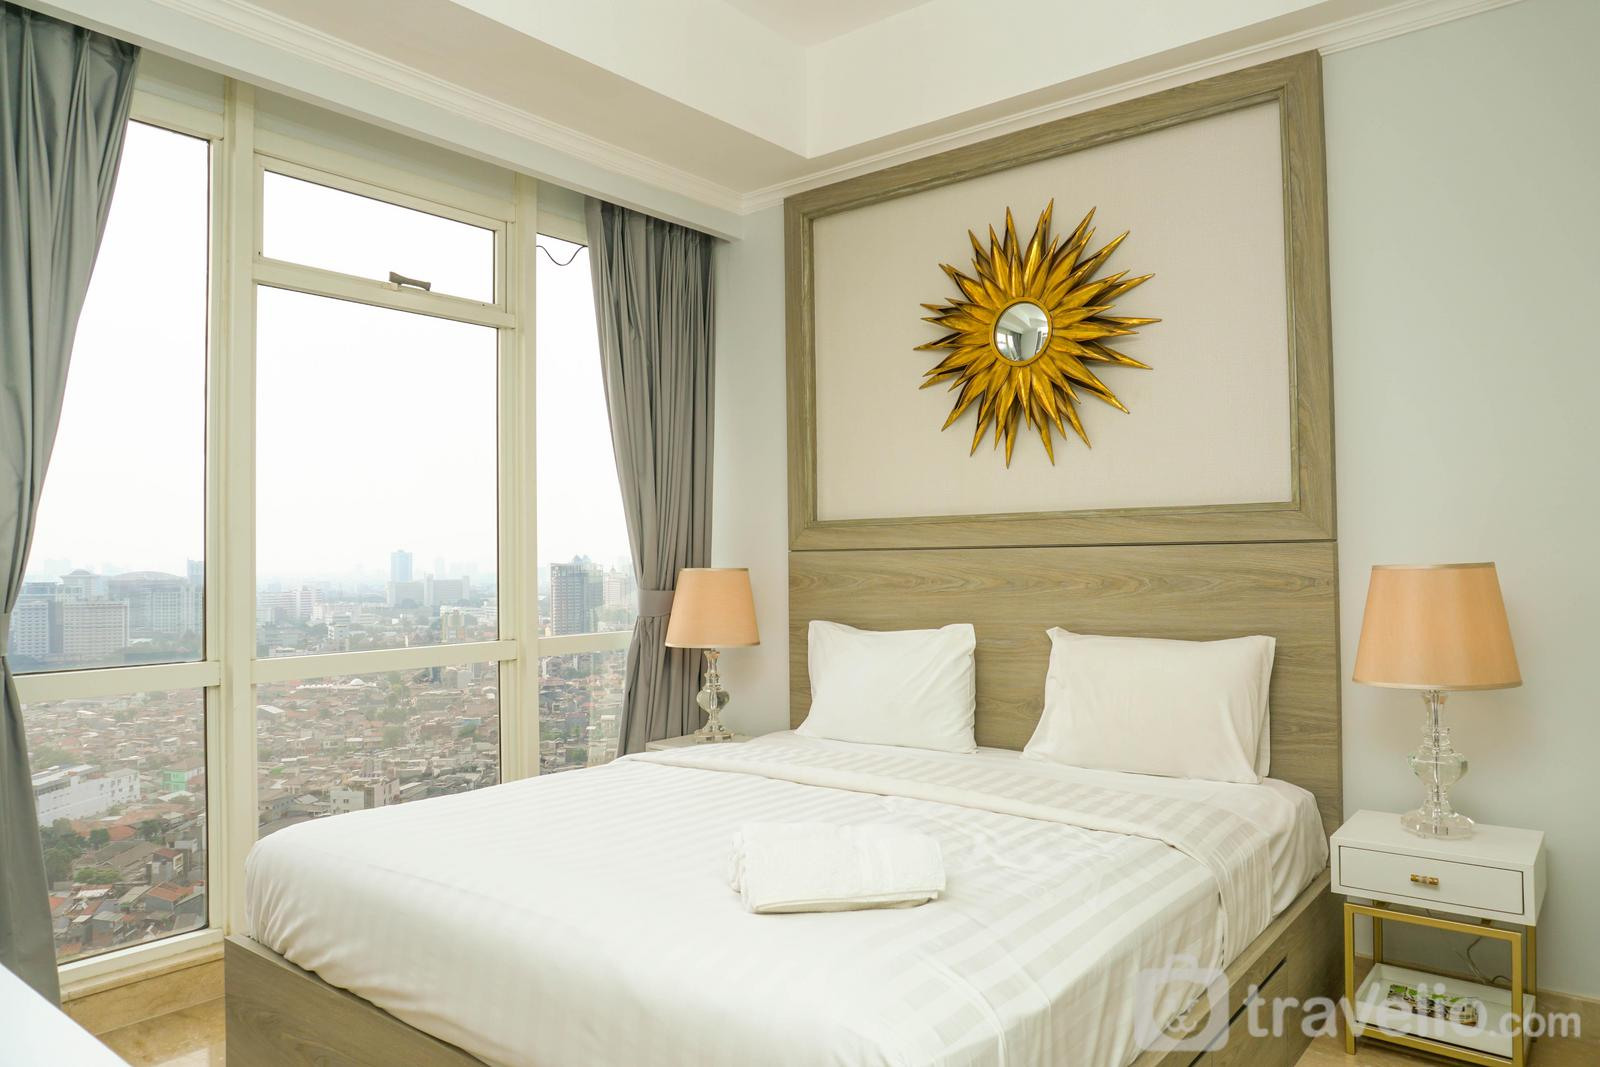 Menteng Park Apartment - Luxurious 2BR with Private Lift at Menteng Park Apartment By Travelio